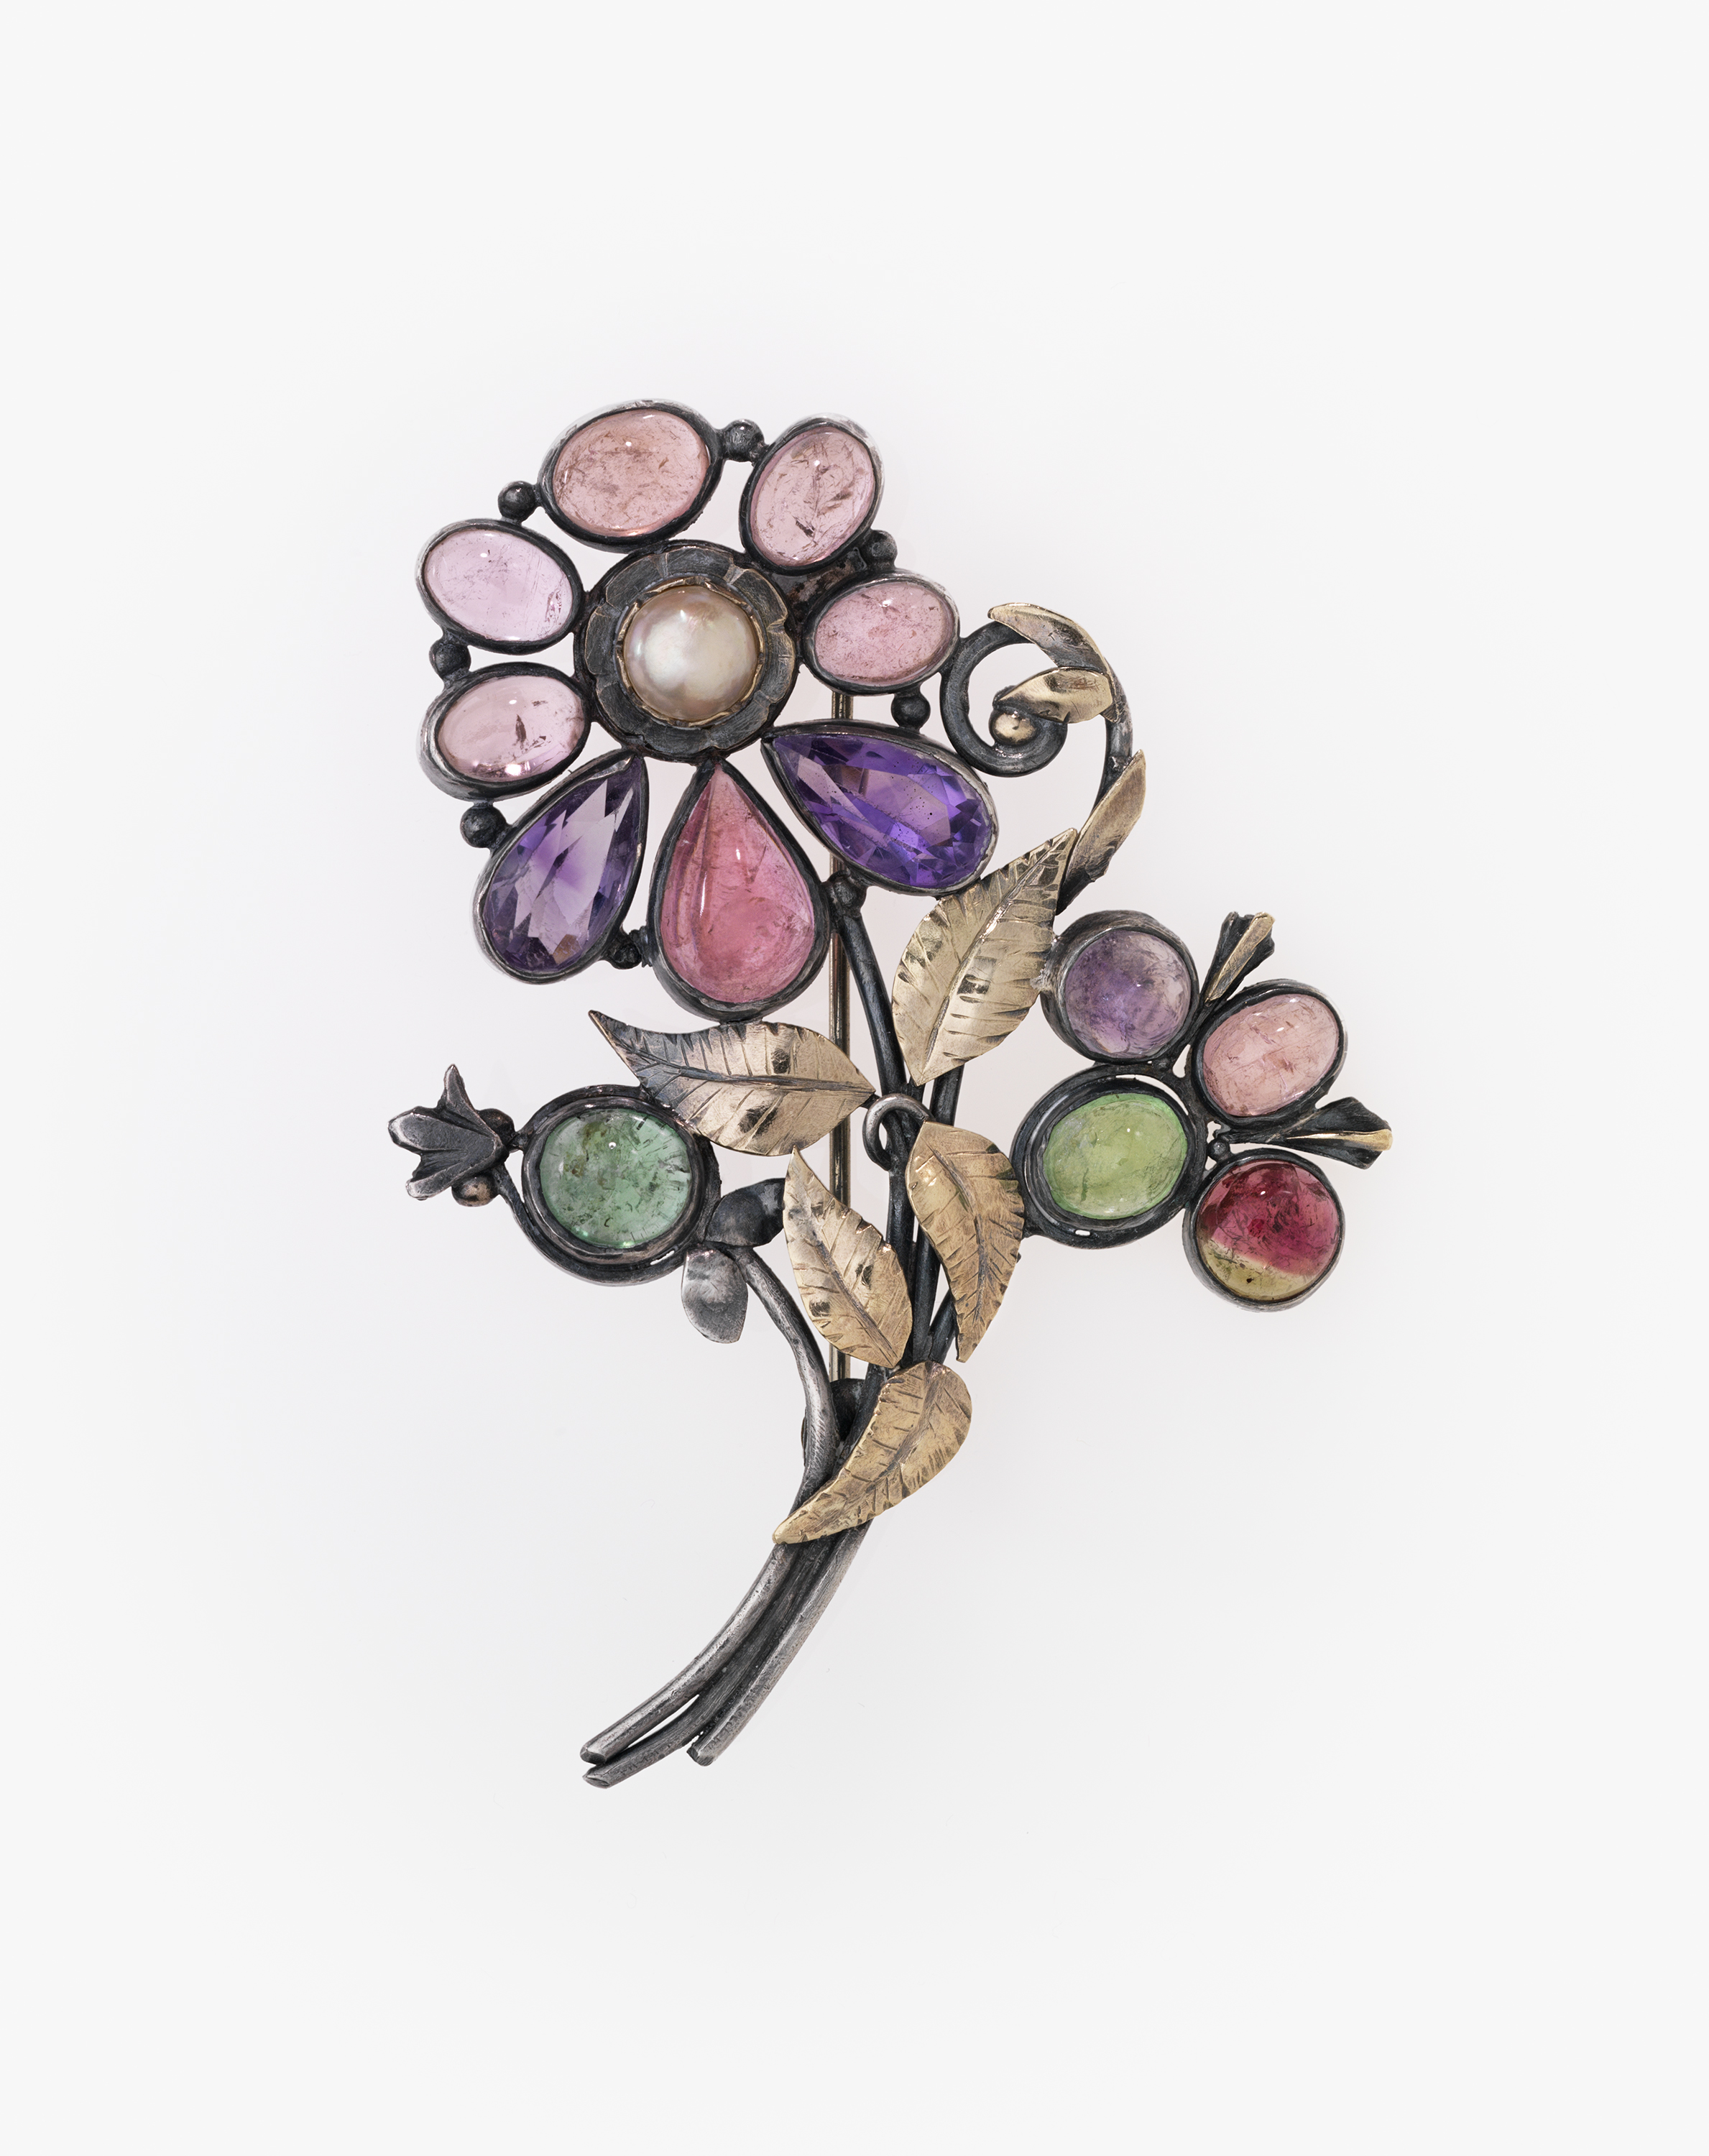 Brooch, Jessie Ames Dunbar, 1876‑1957 (American). On loan from the family of the artist. Courtesy, Museum of Fine Arts, Boston